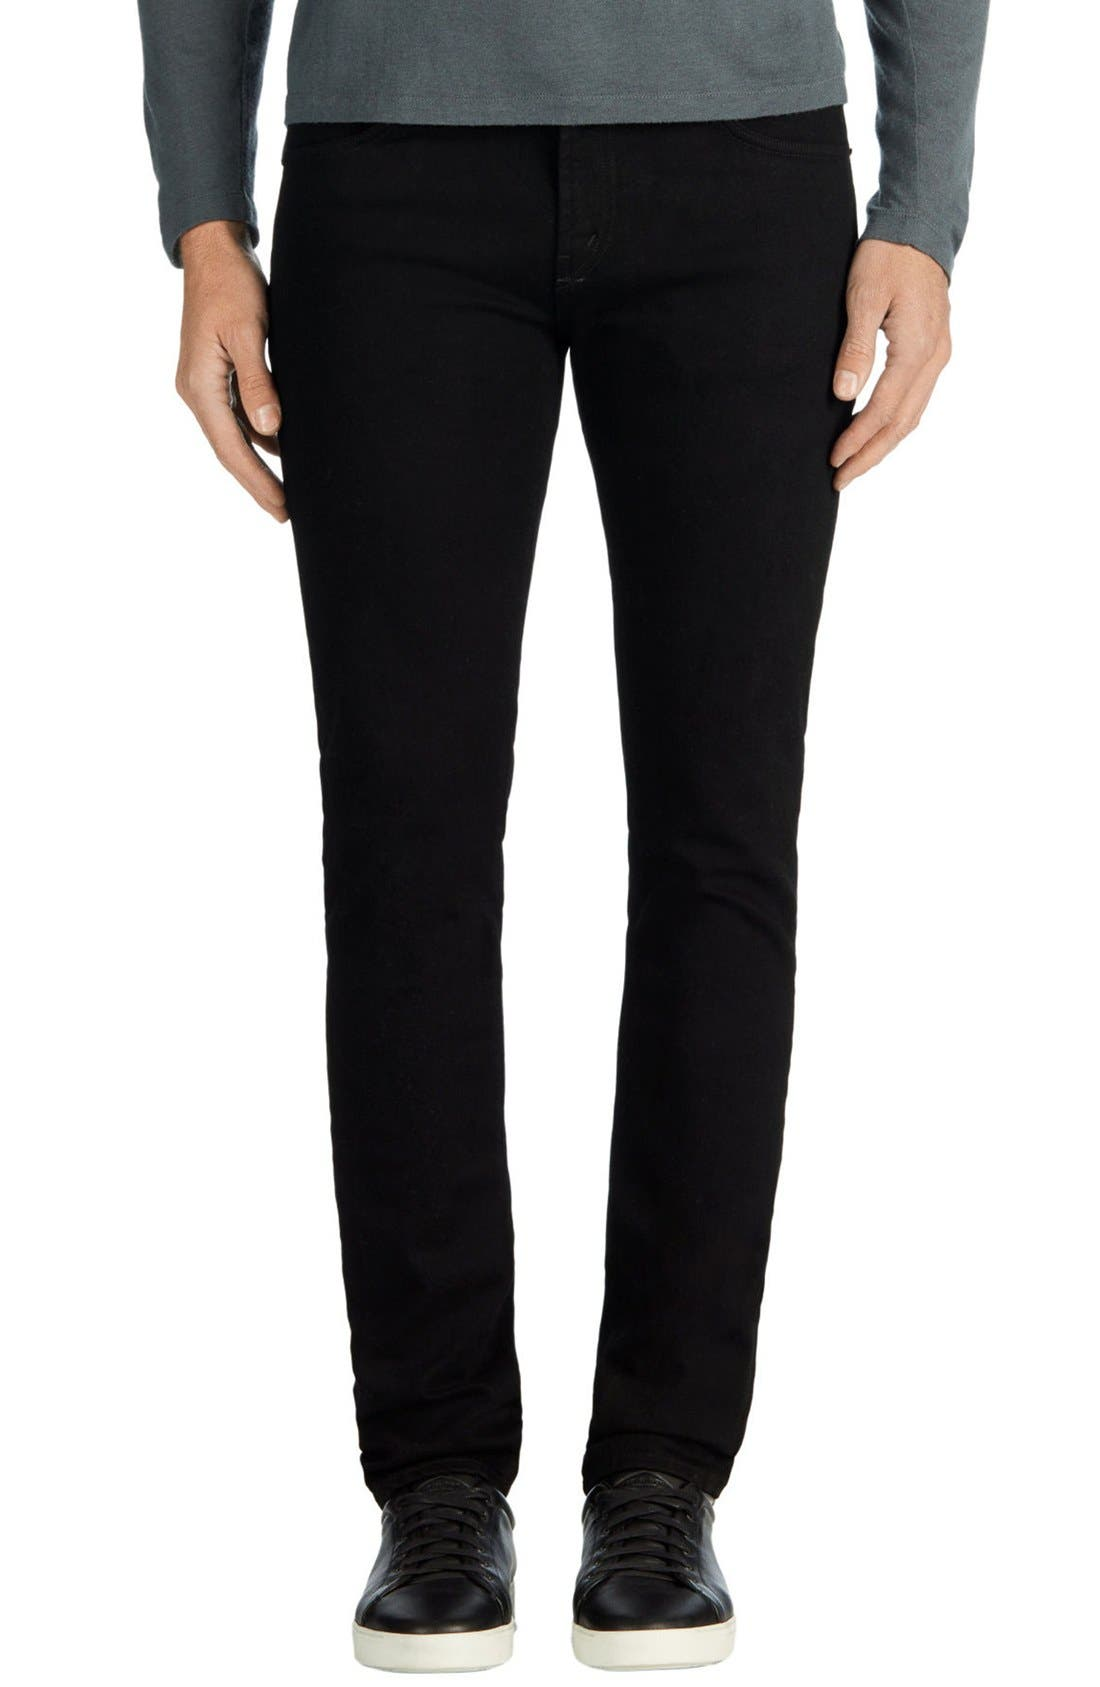 Alternate Image 1 Selected - J Brand Skinny Jeans (Trivor Black)